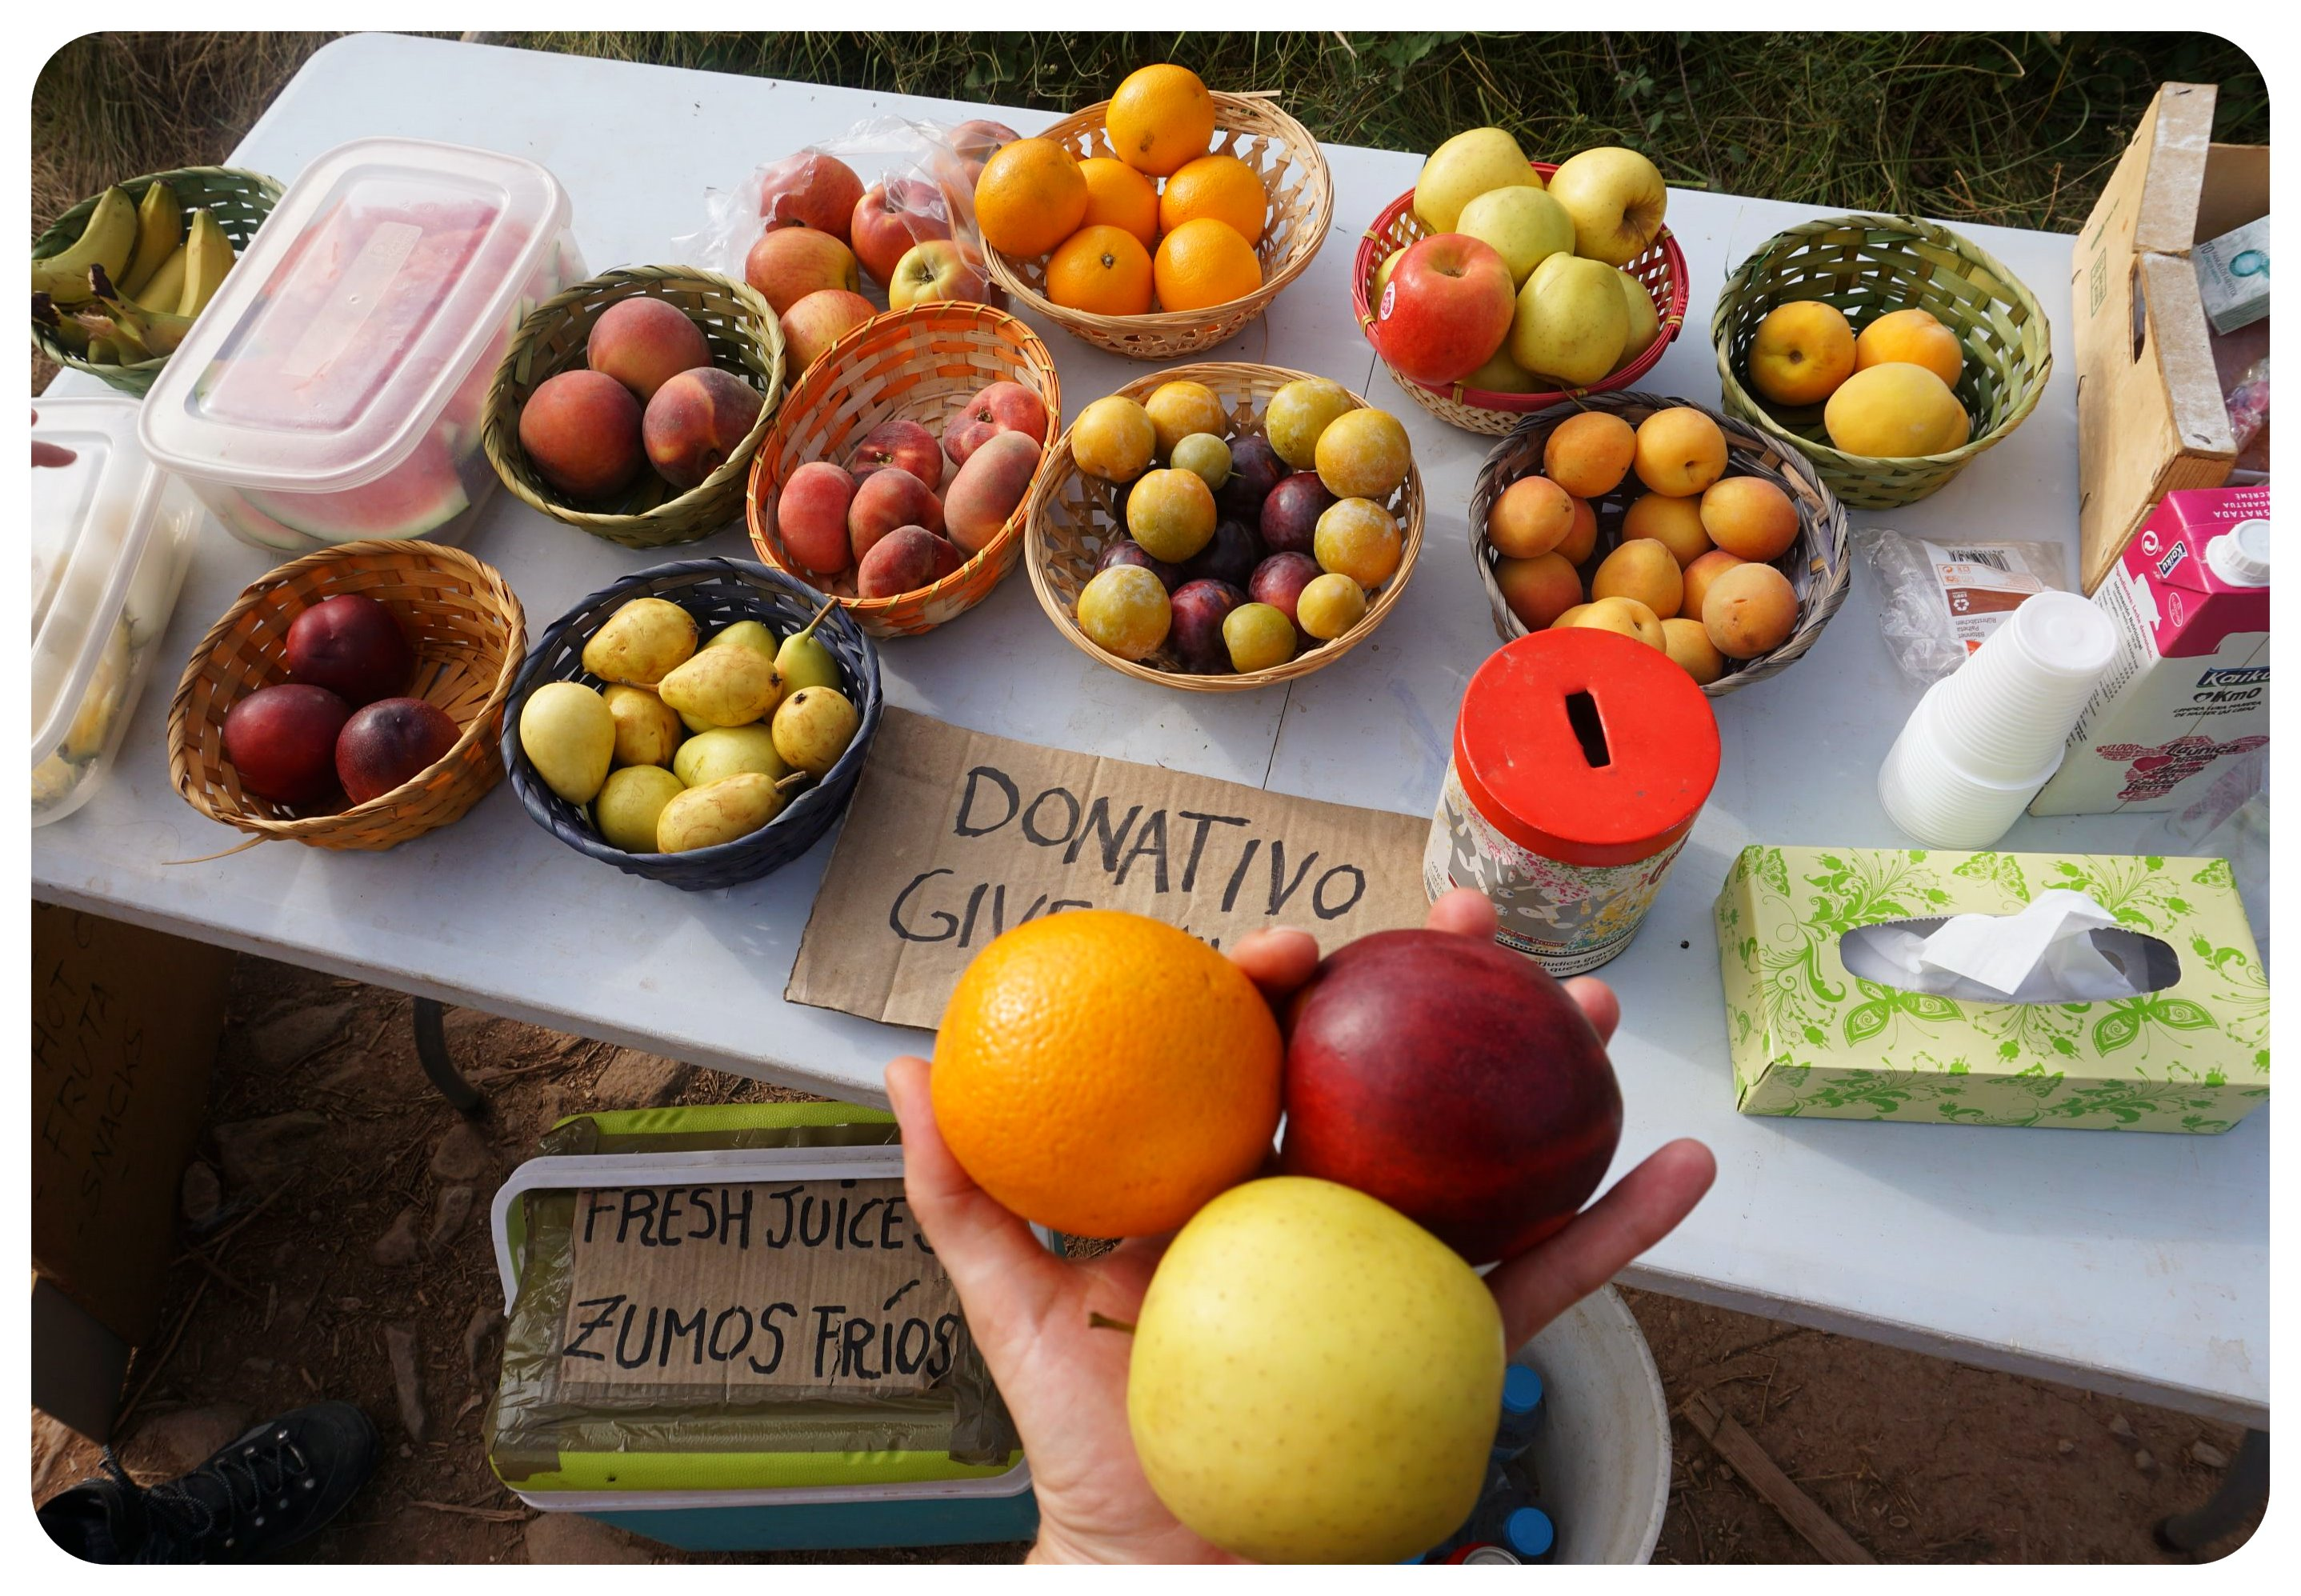 Camino fruit stand